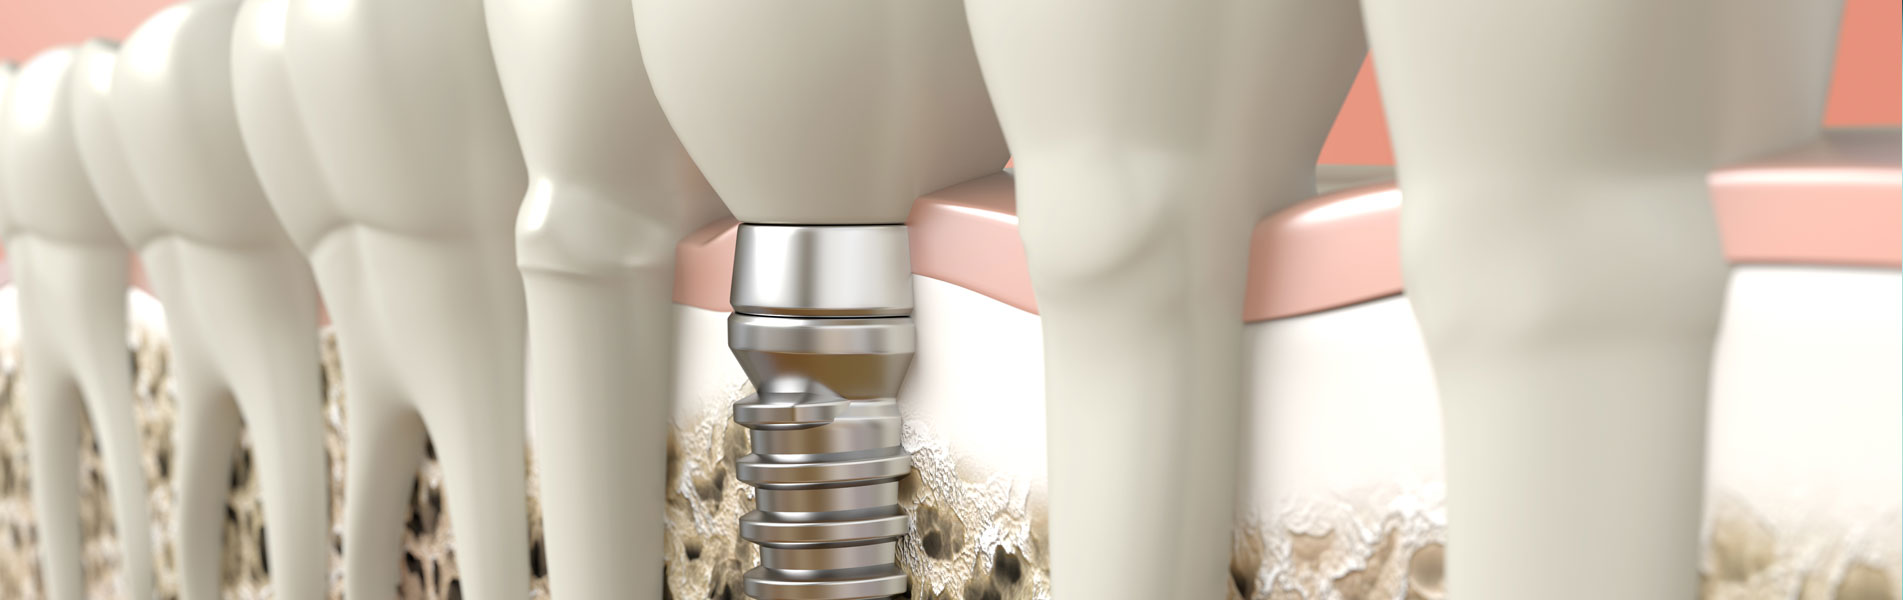 3d dental implants in south austin